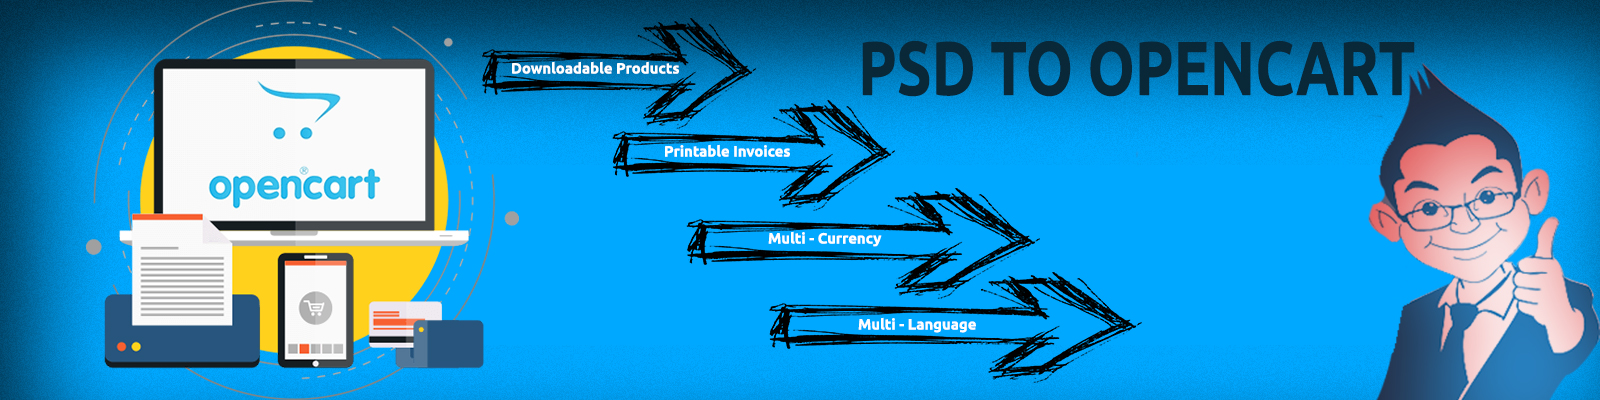 psd to opencart conversion services